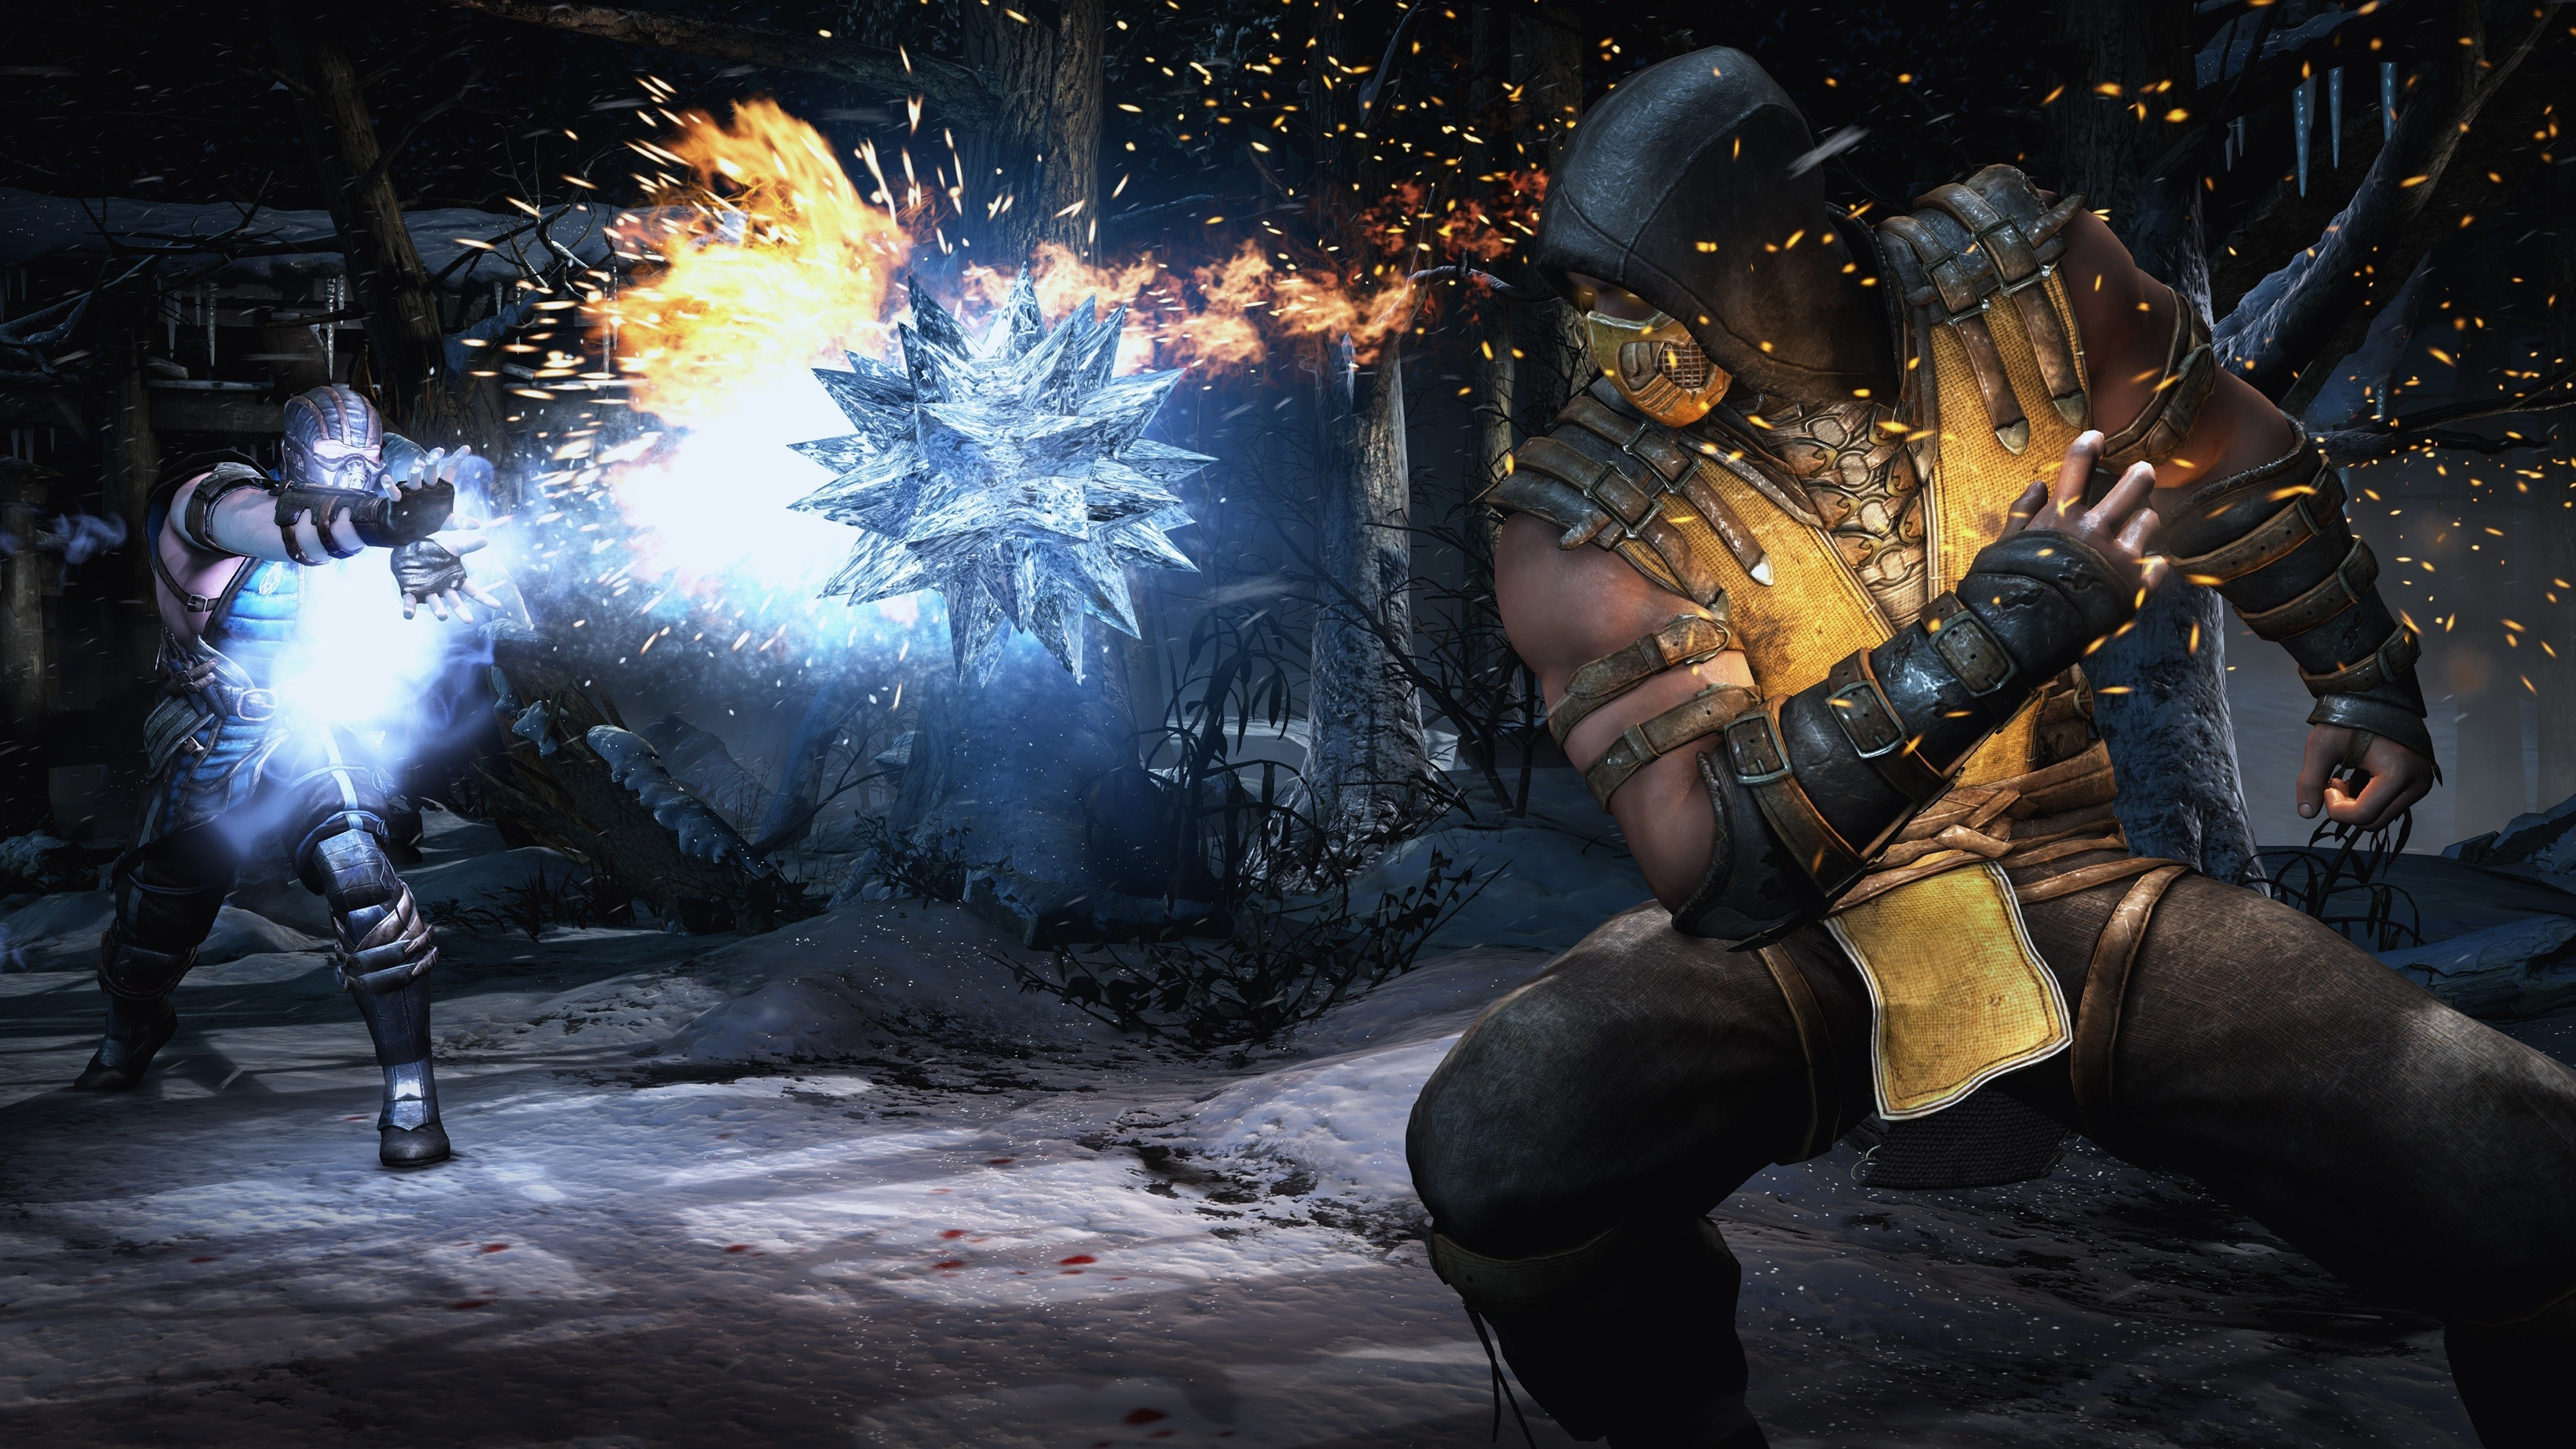 Pictures Of Scorpion From Mortal Kombat During Fighting